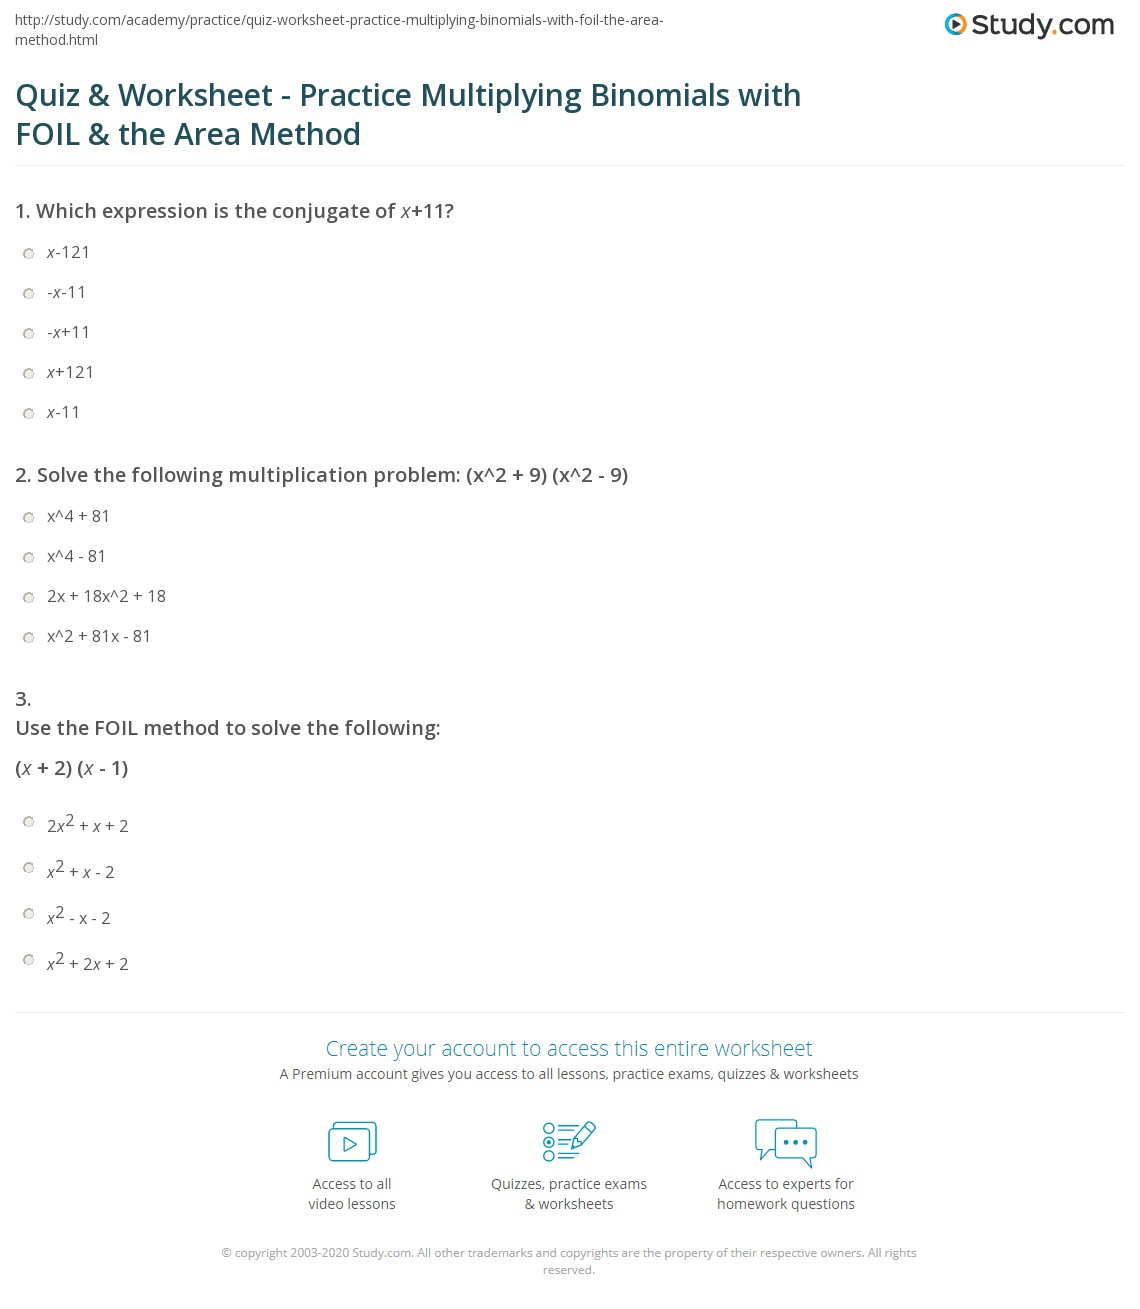 worksheet Foil Worksheets quiz worksheet practice multiplying binomials with foil the print using area method problems worksheet